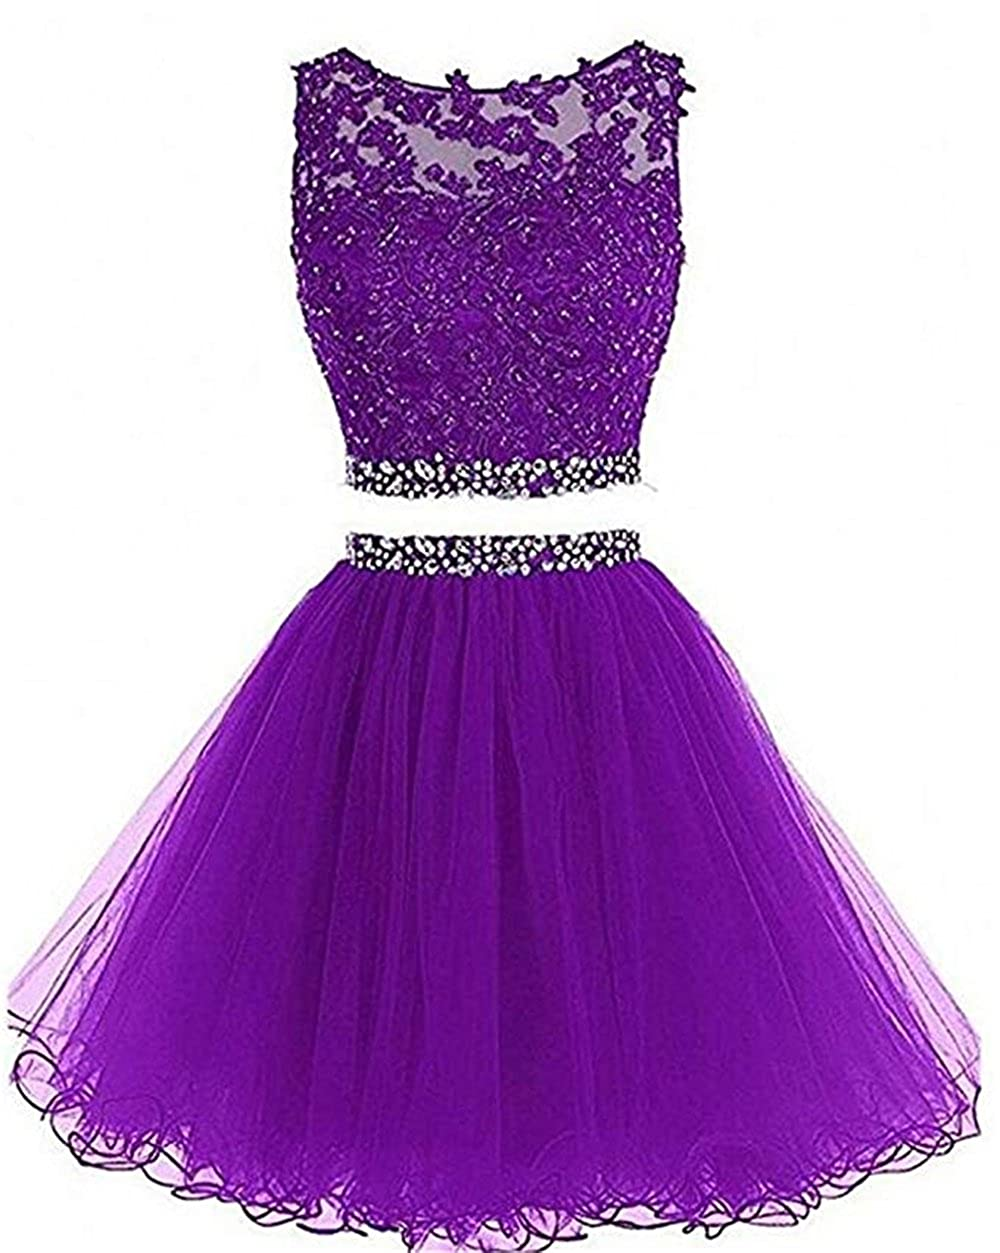 Purple qibinfs Women Dress Organza for Wedding Party Prom Birthday Party 2 Sets